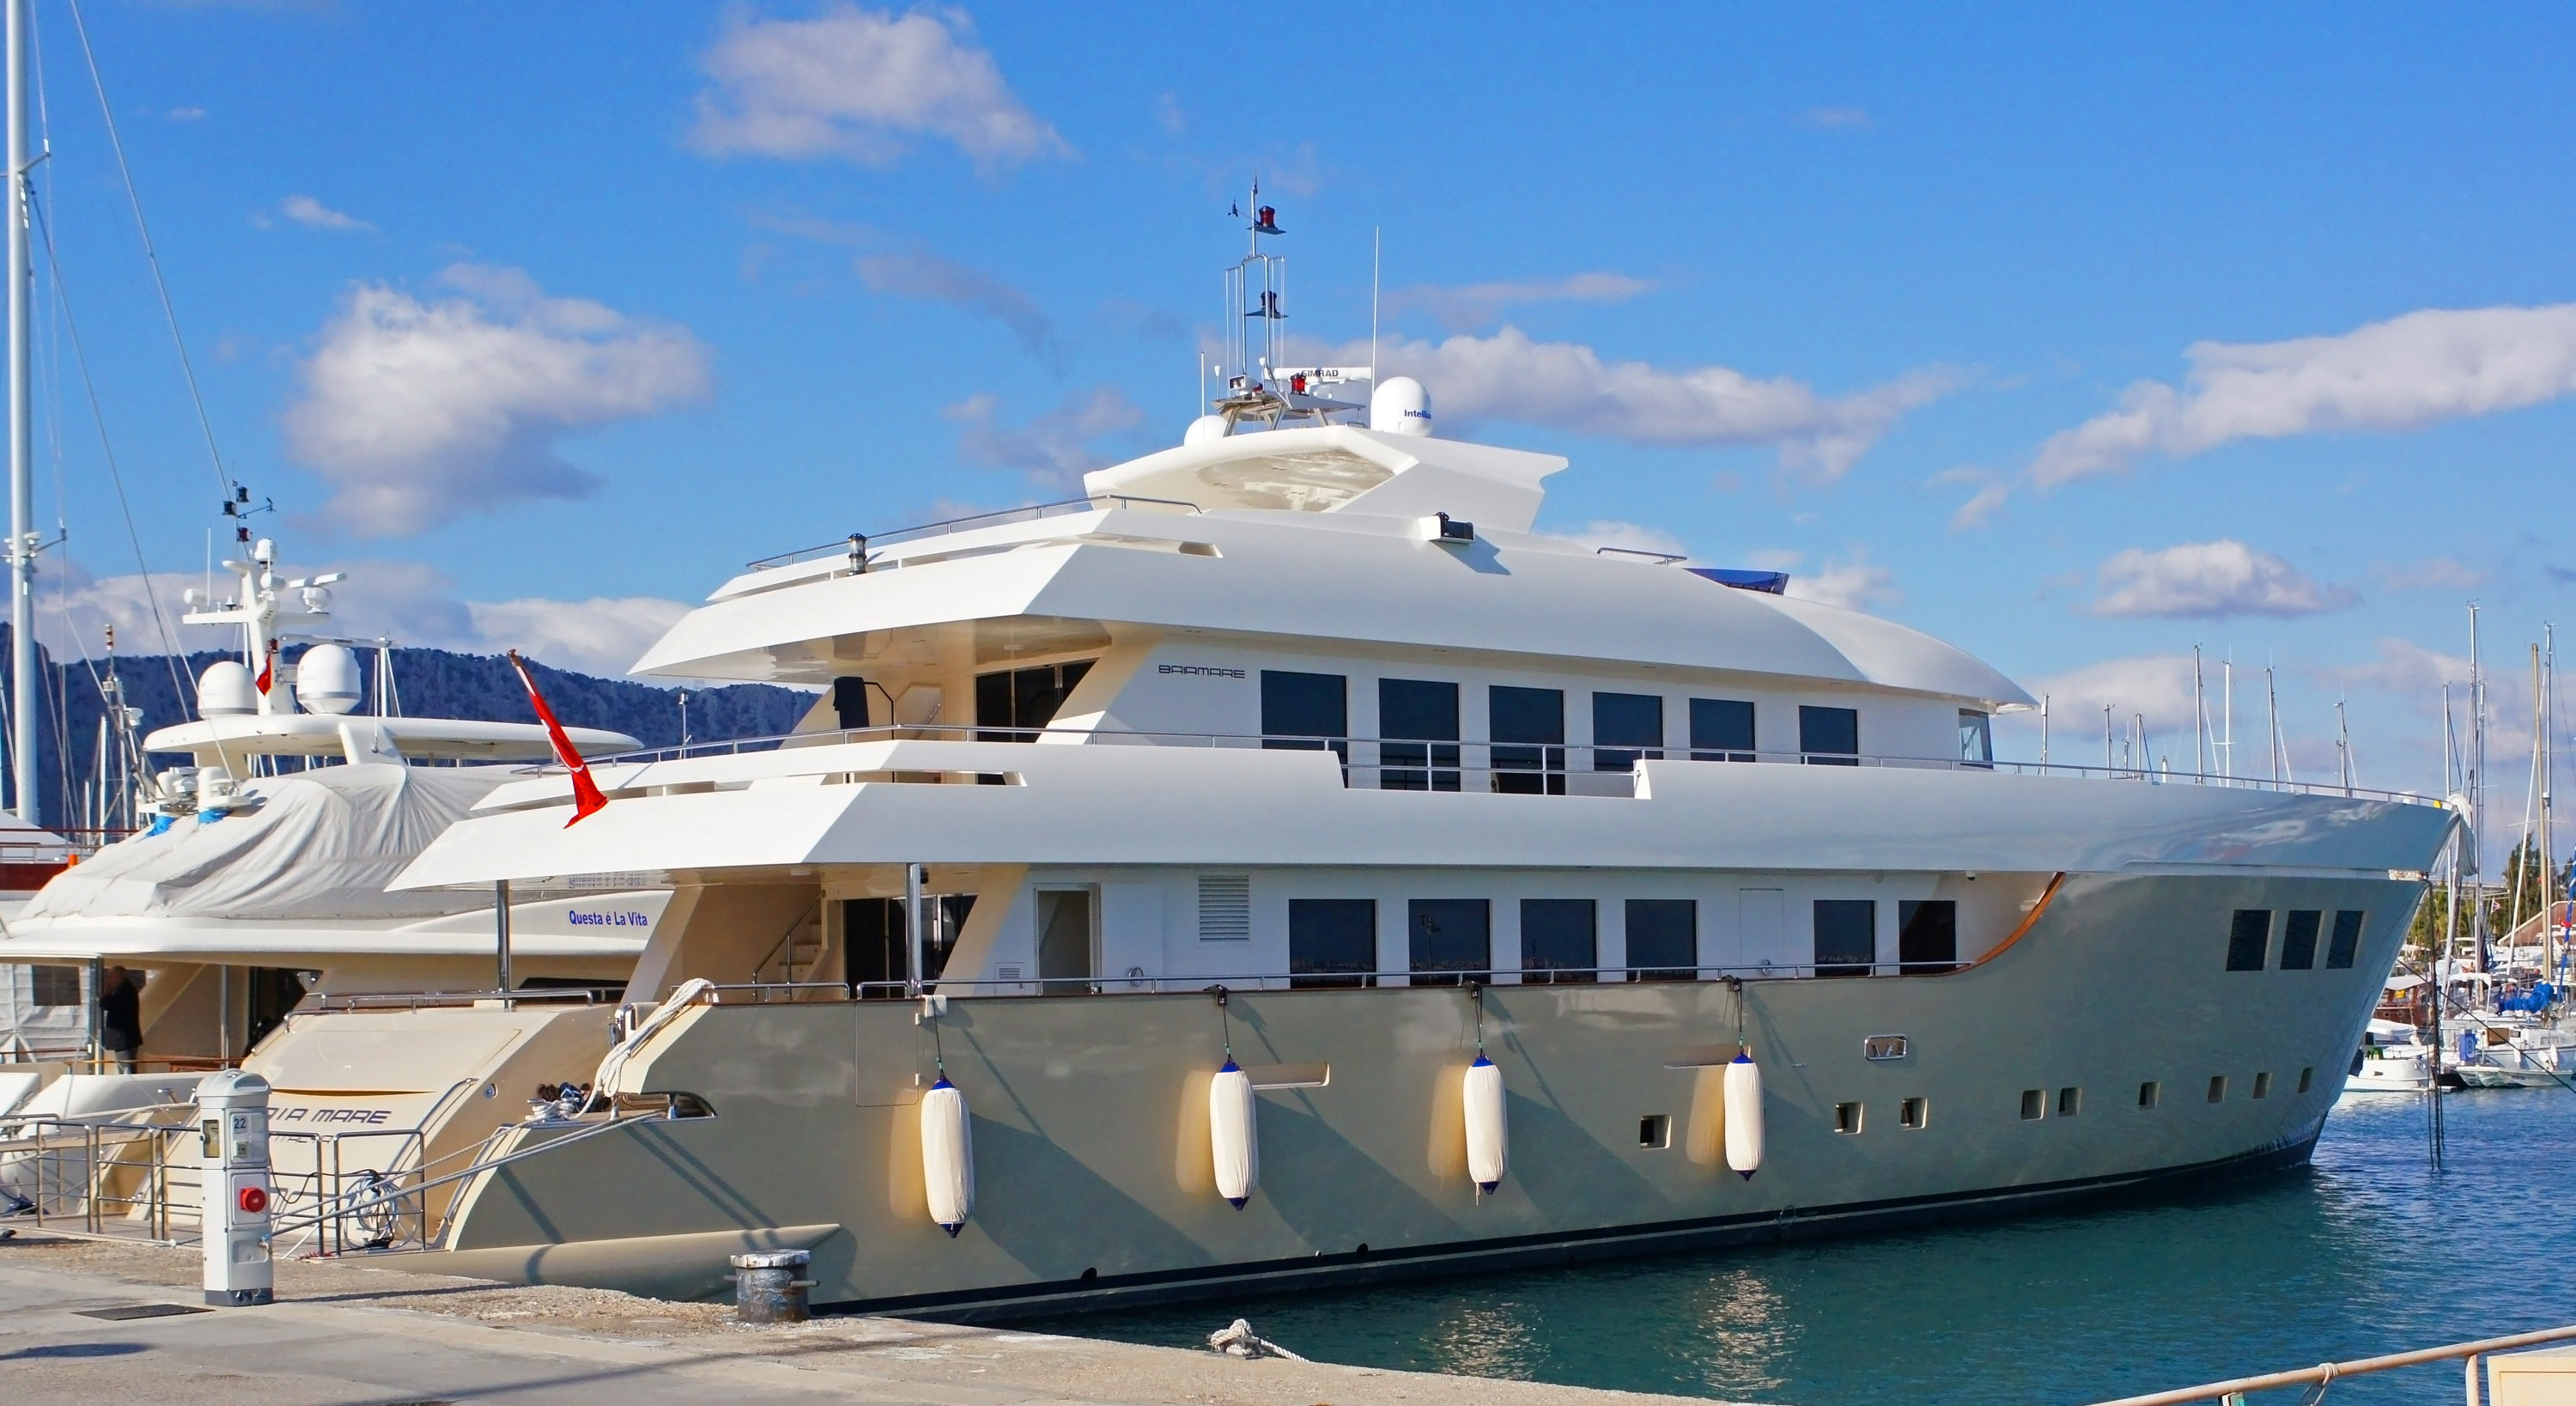 Brand new 42m motor yacht baiamare by nedship for sale for Luxury motor yachts for sale